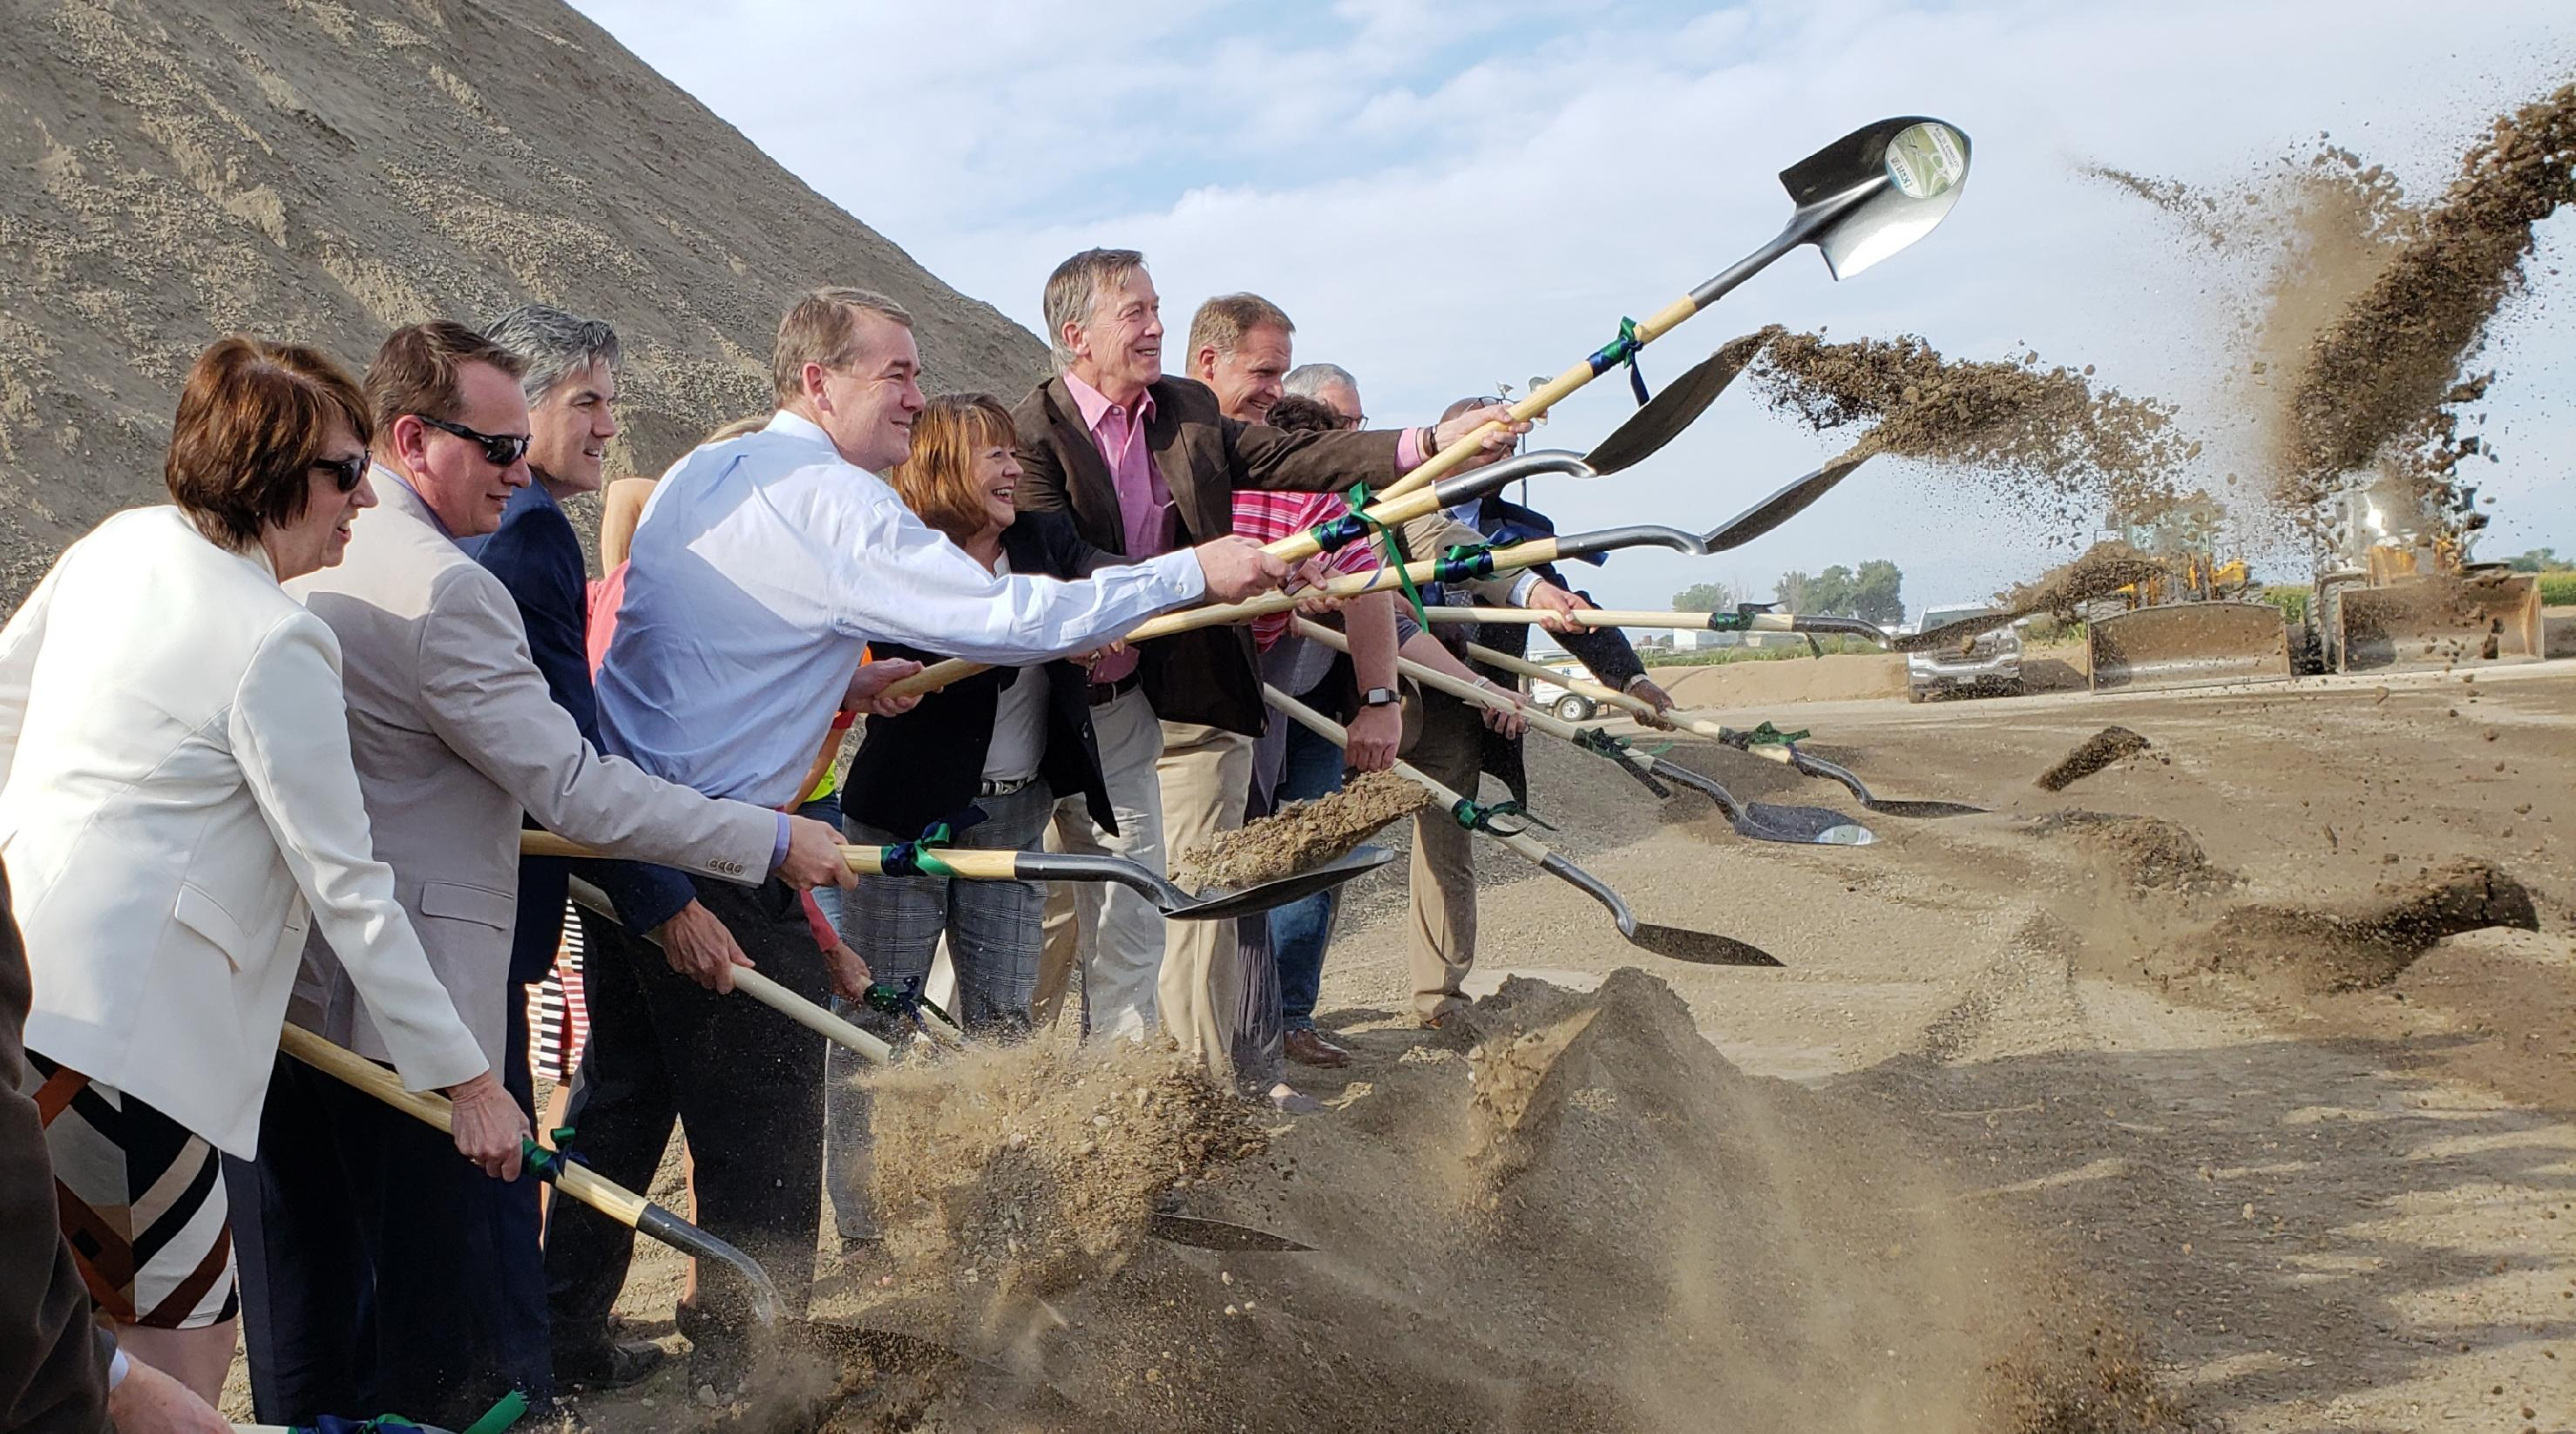 Gov. John Hickenlooper broke ground on the I-25 North Express Lanes project Monday. He was joined with Sen. Michael Bennet and many local, state and federal officials who helped make this project a reality.